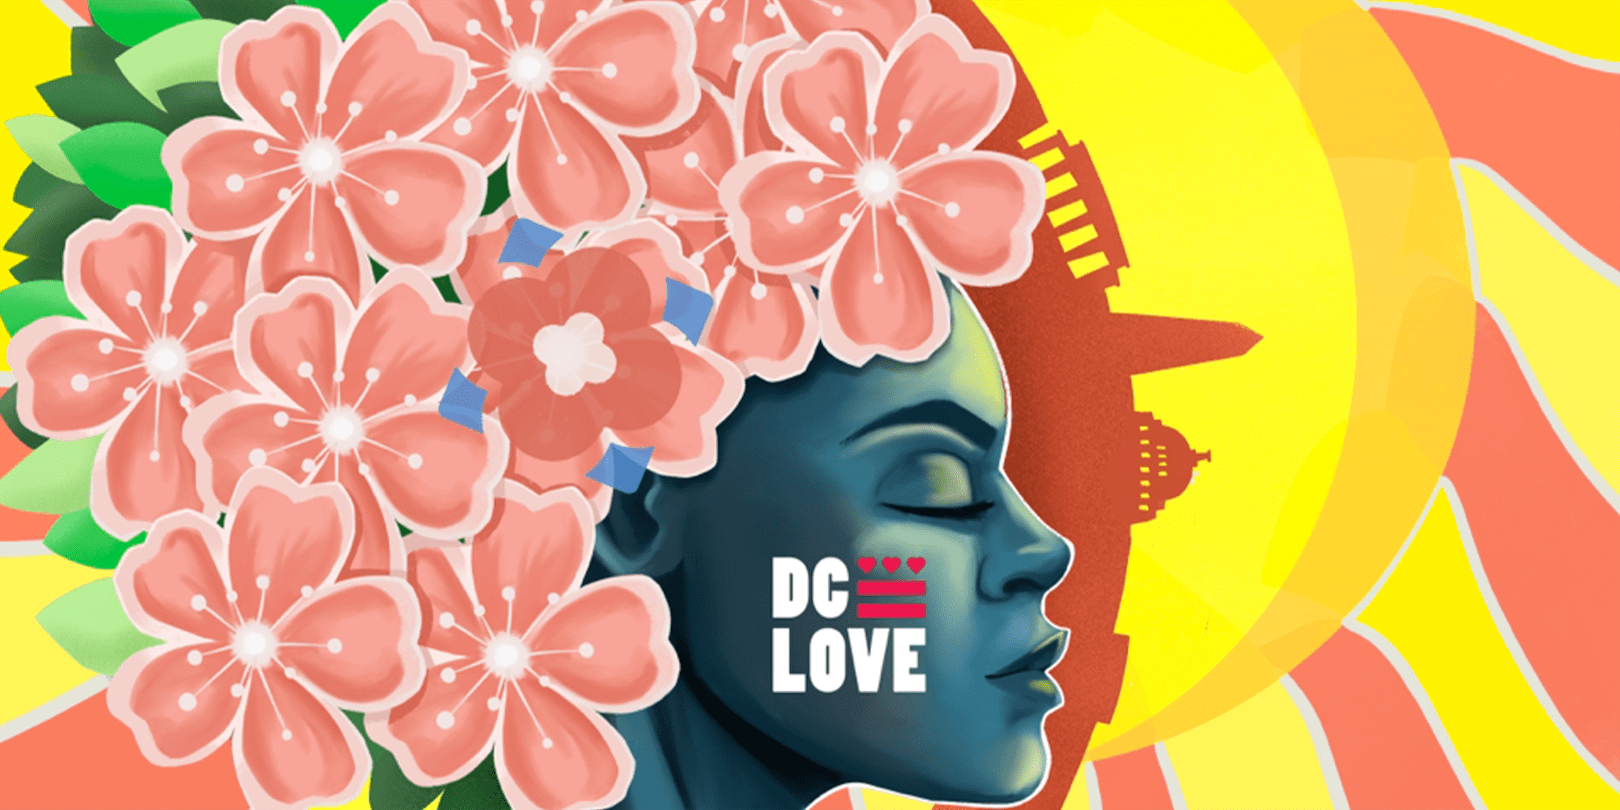 Illustration of a person's face with cherry blossoms and DC monuments in the background.